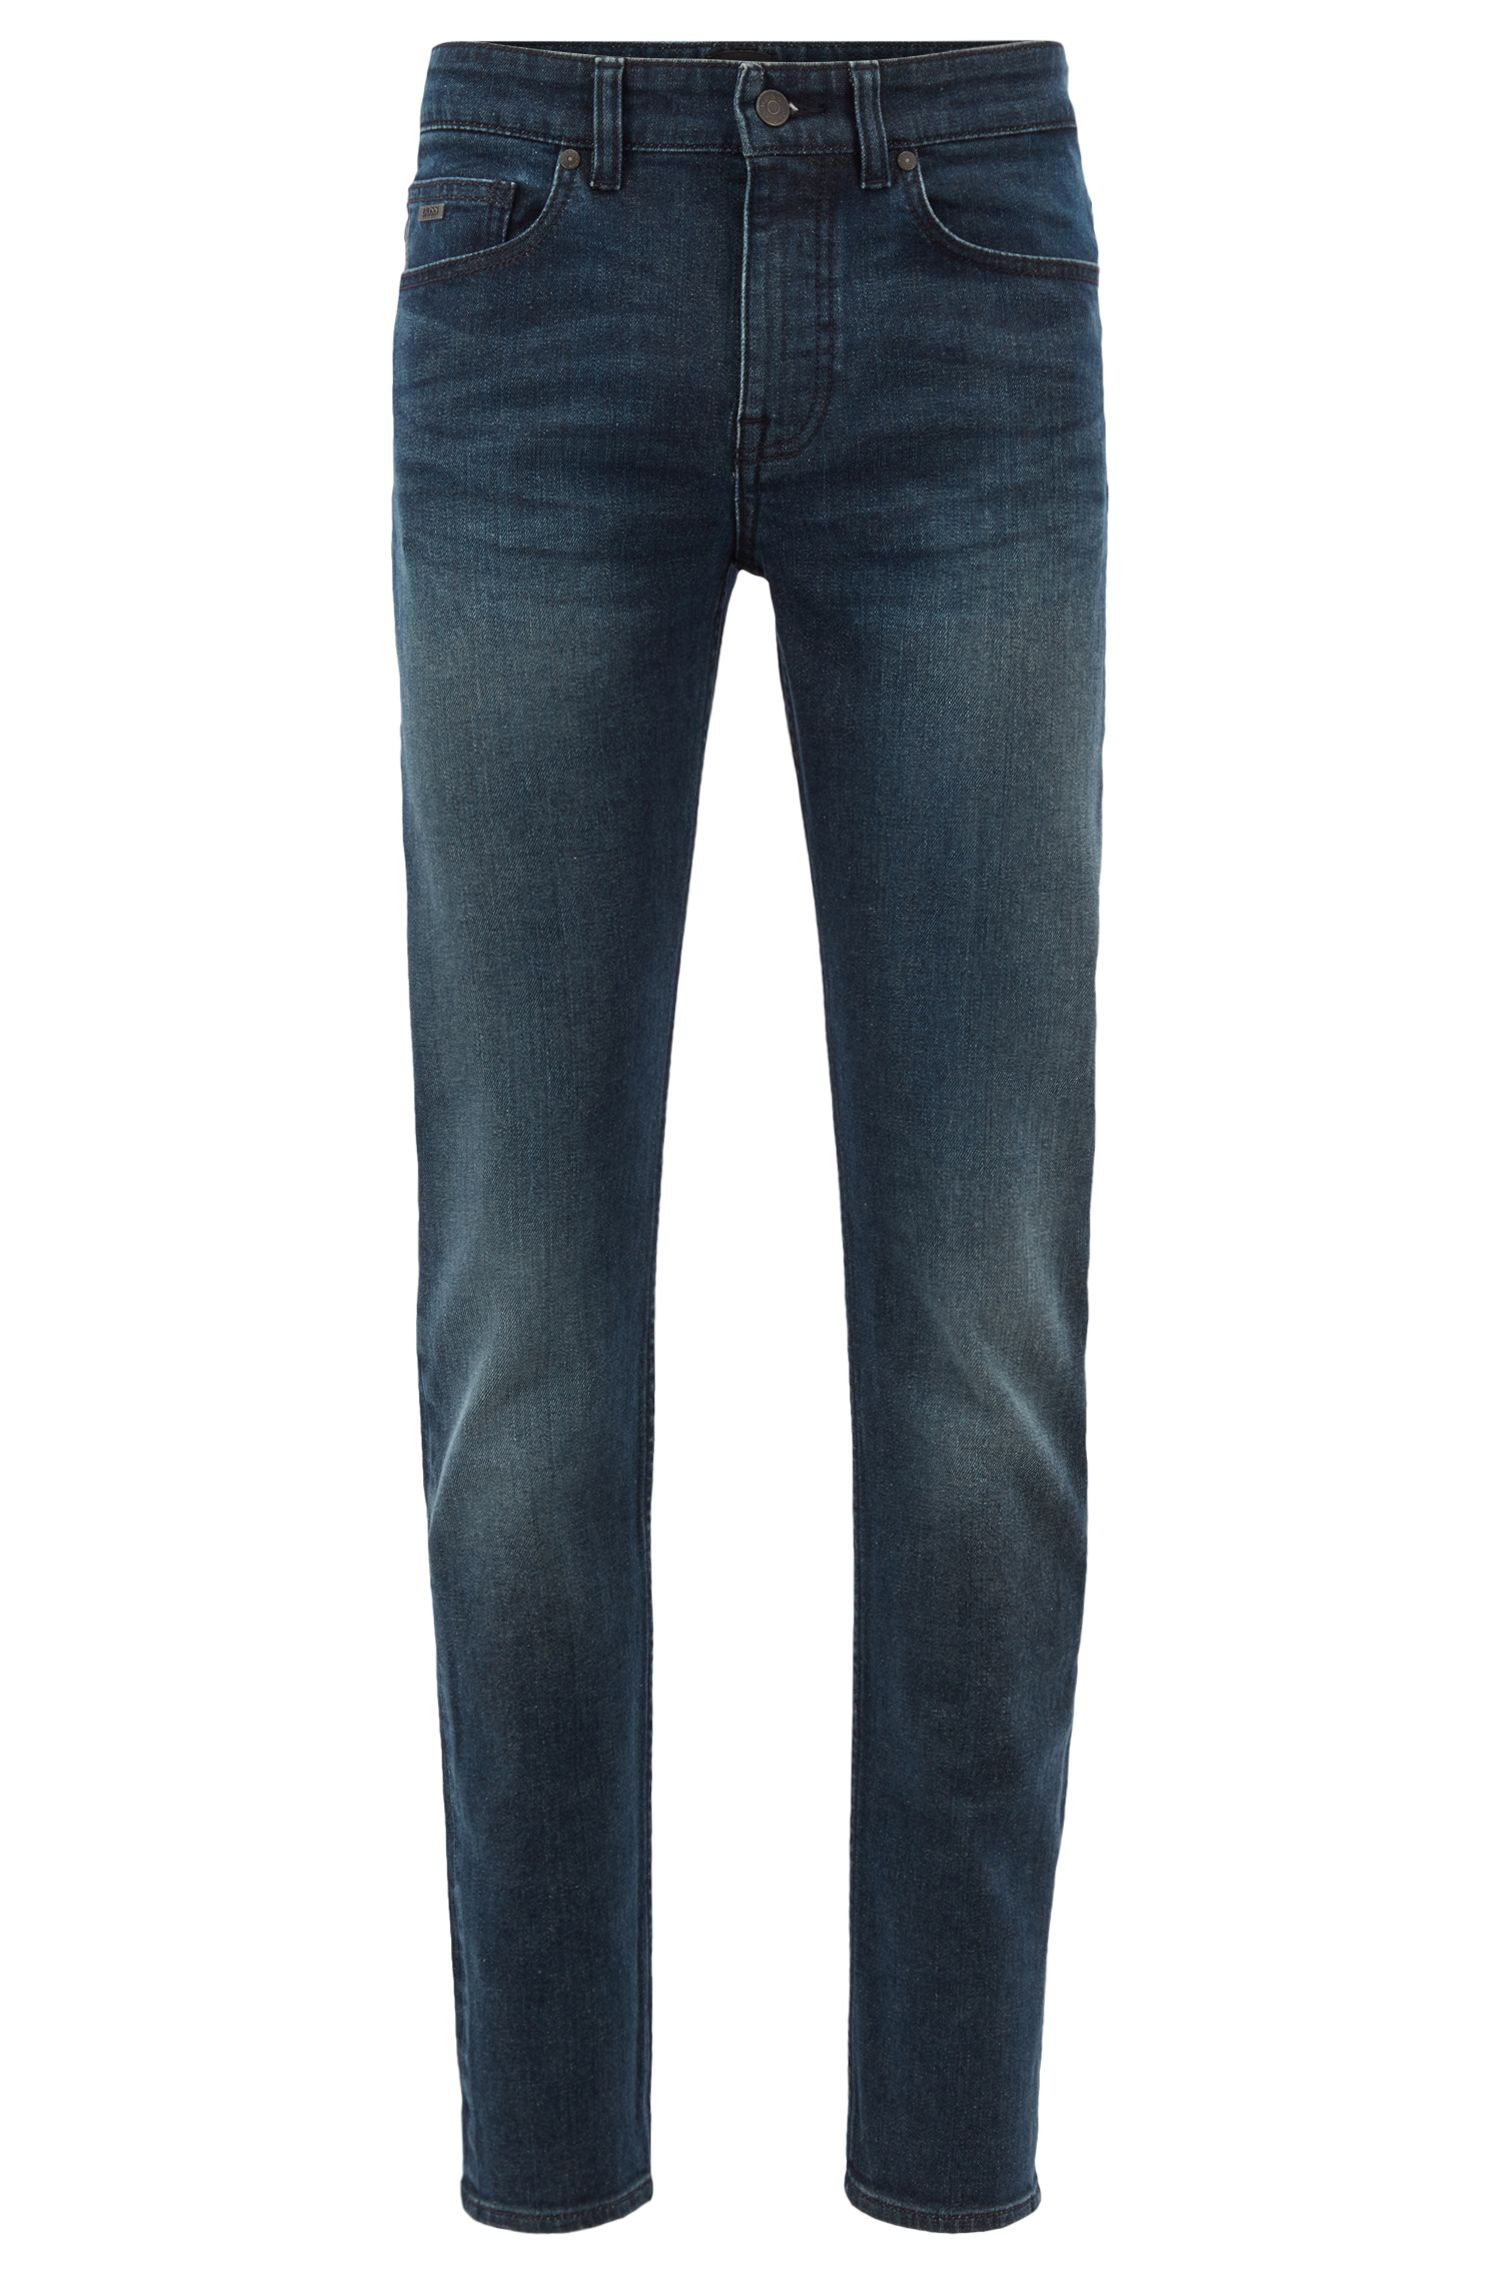 Slim-Fit Jeans aus komfortablem Stretch-Denim, Dunkelblau